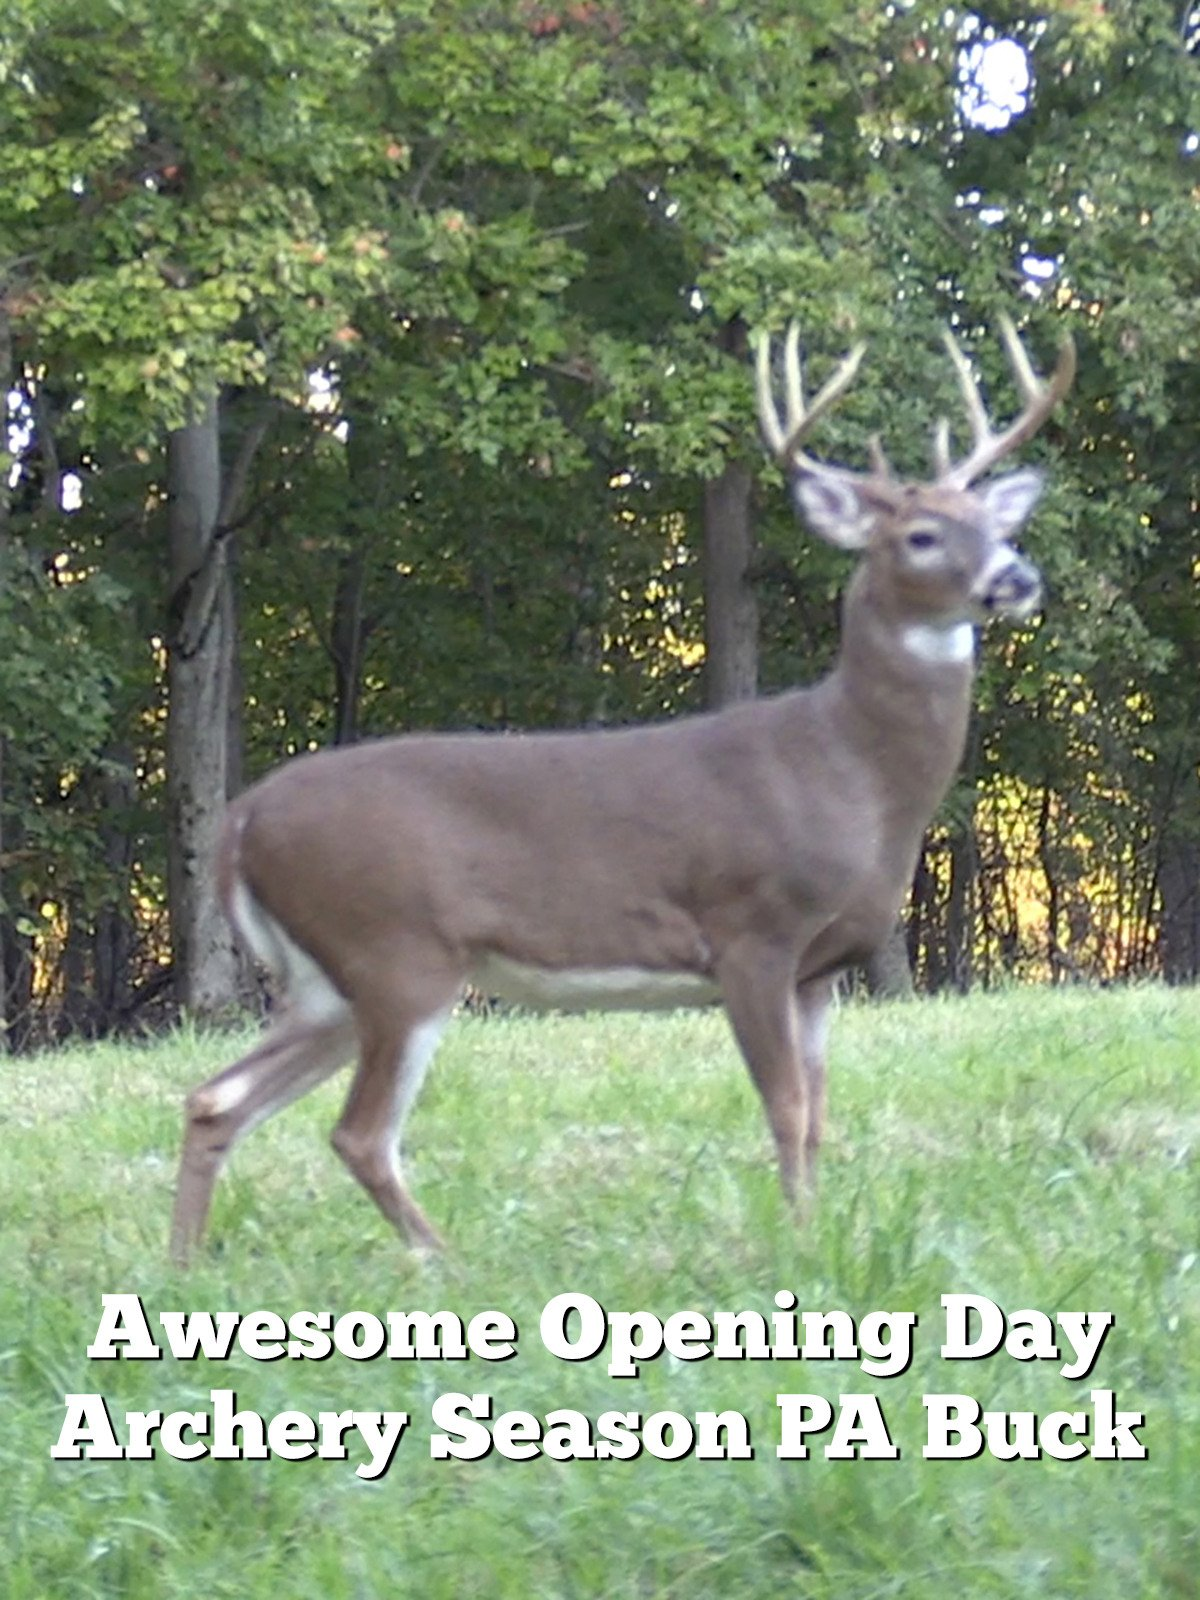 Awesome Opening Day Archery Season PA Buck